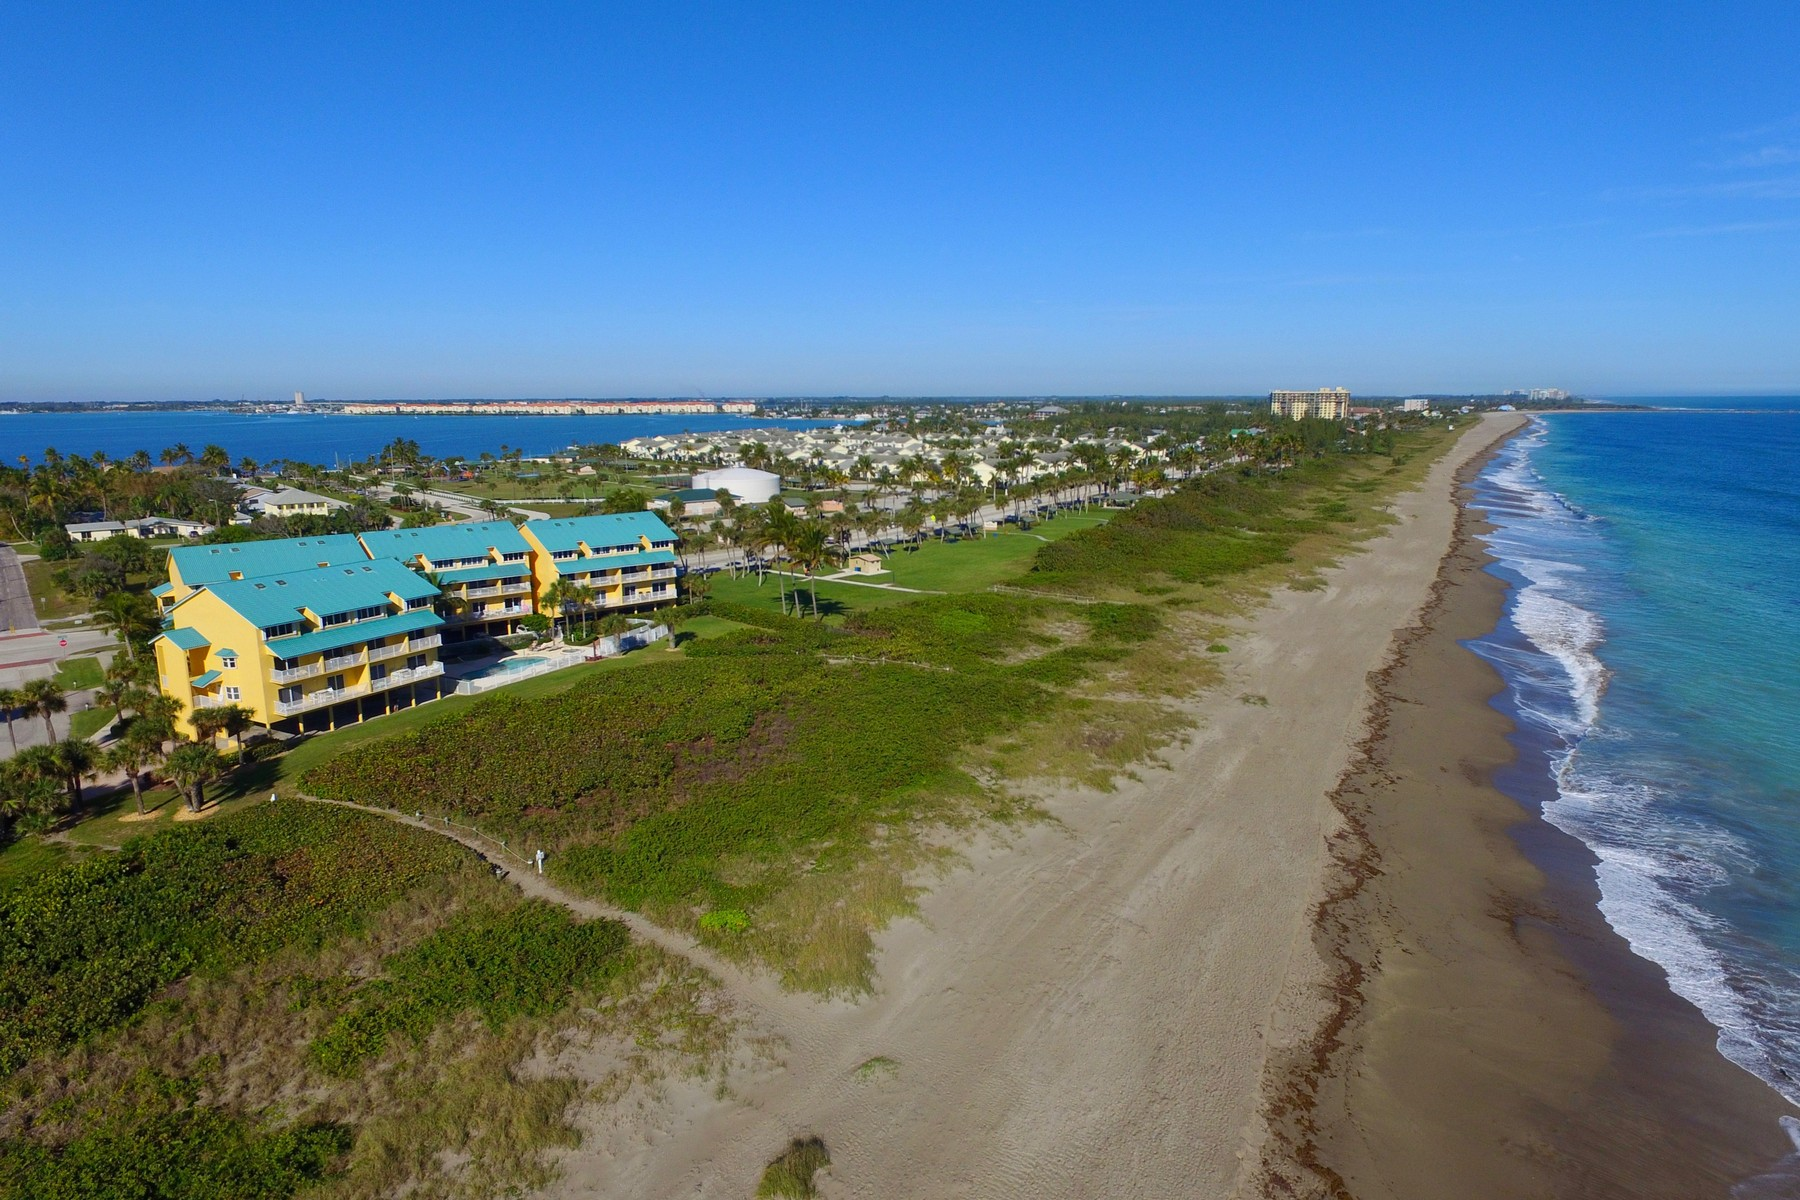 Condominiums for Sale at Location, Location! Cozy Two Bedroom Turn-Key Condo on Hutchinson Island 1550 S Ocean Drive #D24, Hutchinson Island, Florida 34949 United States